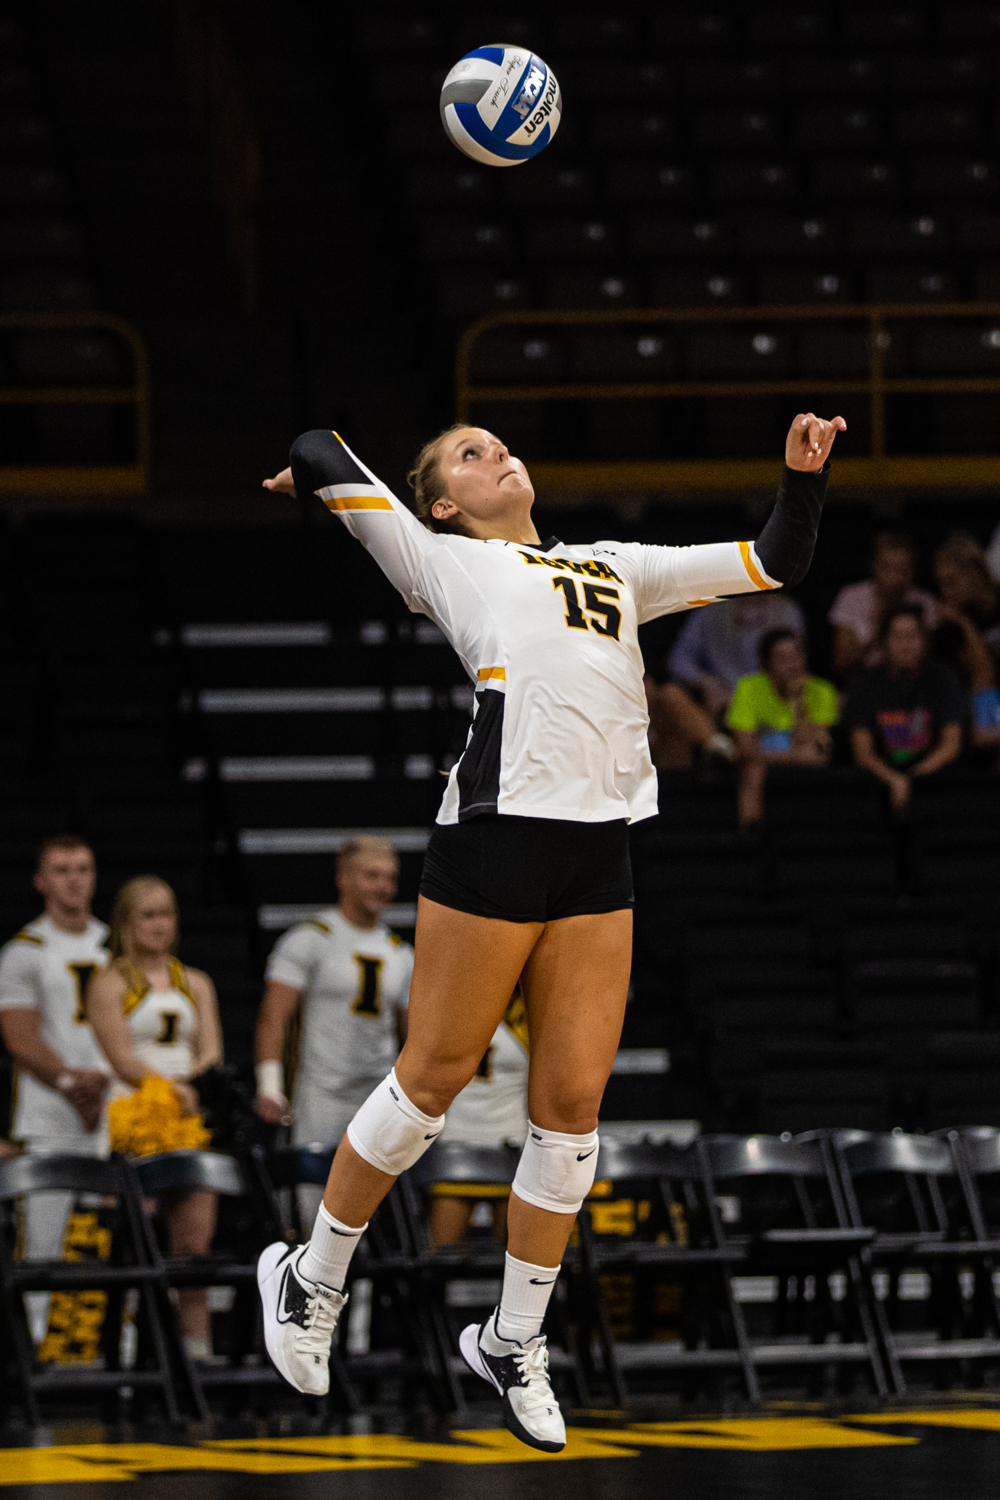 Iowa+defensive+specialist+Maddie+Slagle+serves+the+ball+during+a+volleyball+match+between+Iowa+and+Colorado+in+Carver-Hawkeye+Arena+on+Friday%2C+September+6%2C+2019.+The+Hawkeyes+dropped+their+season+opener+to+the+Buffaloes%2C+3-0.